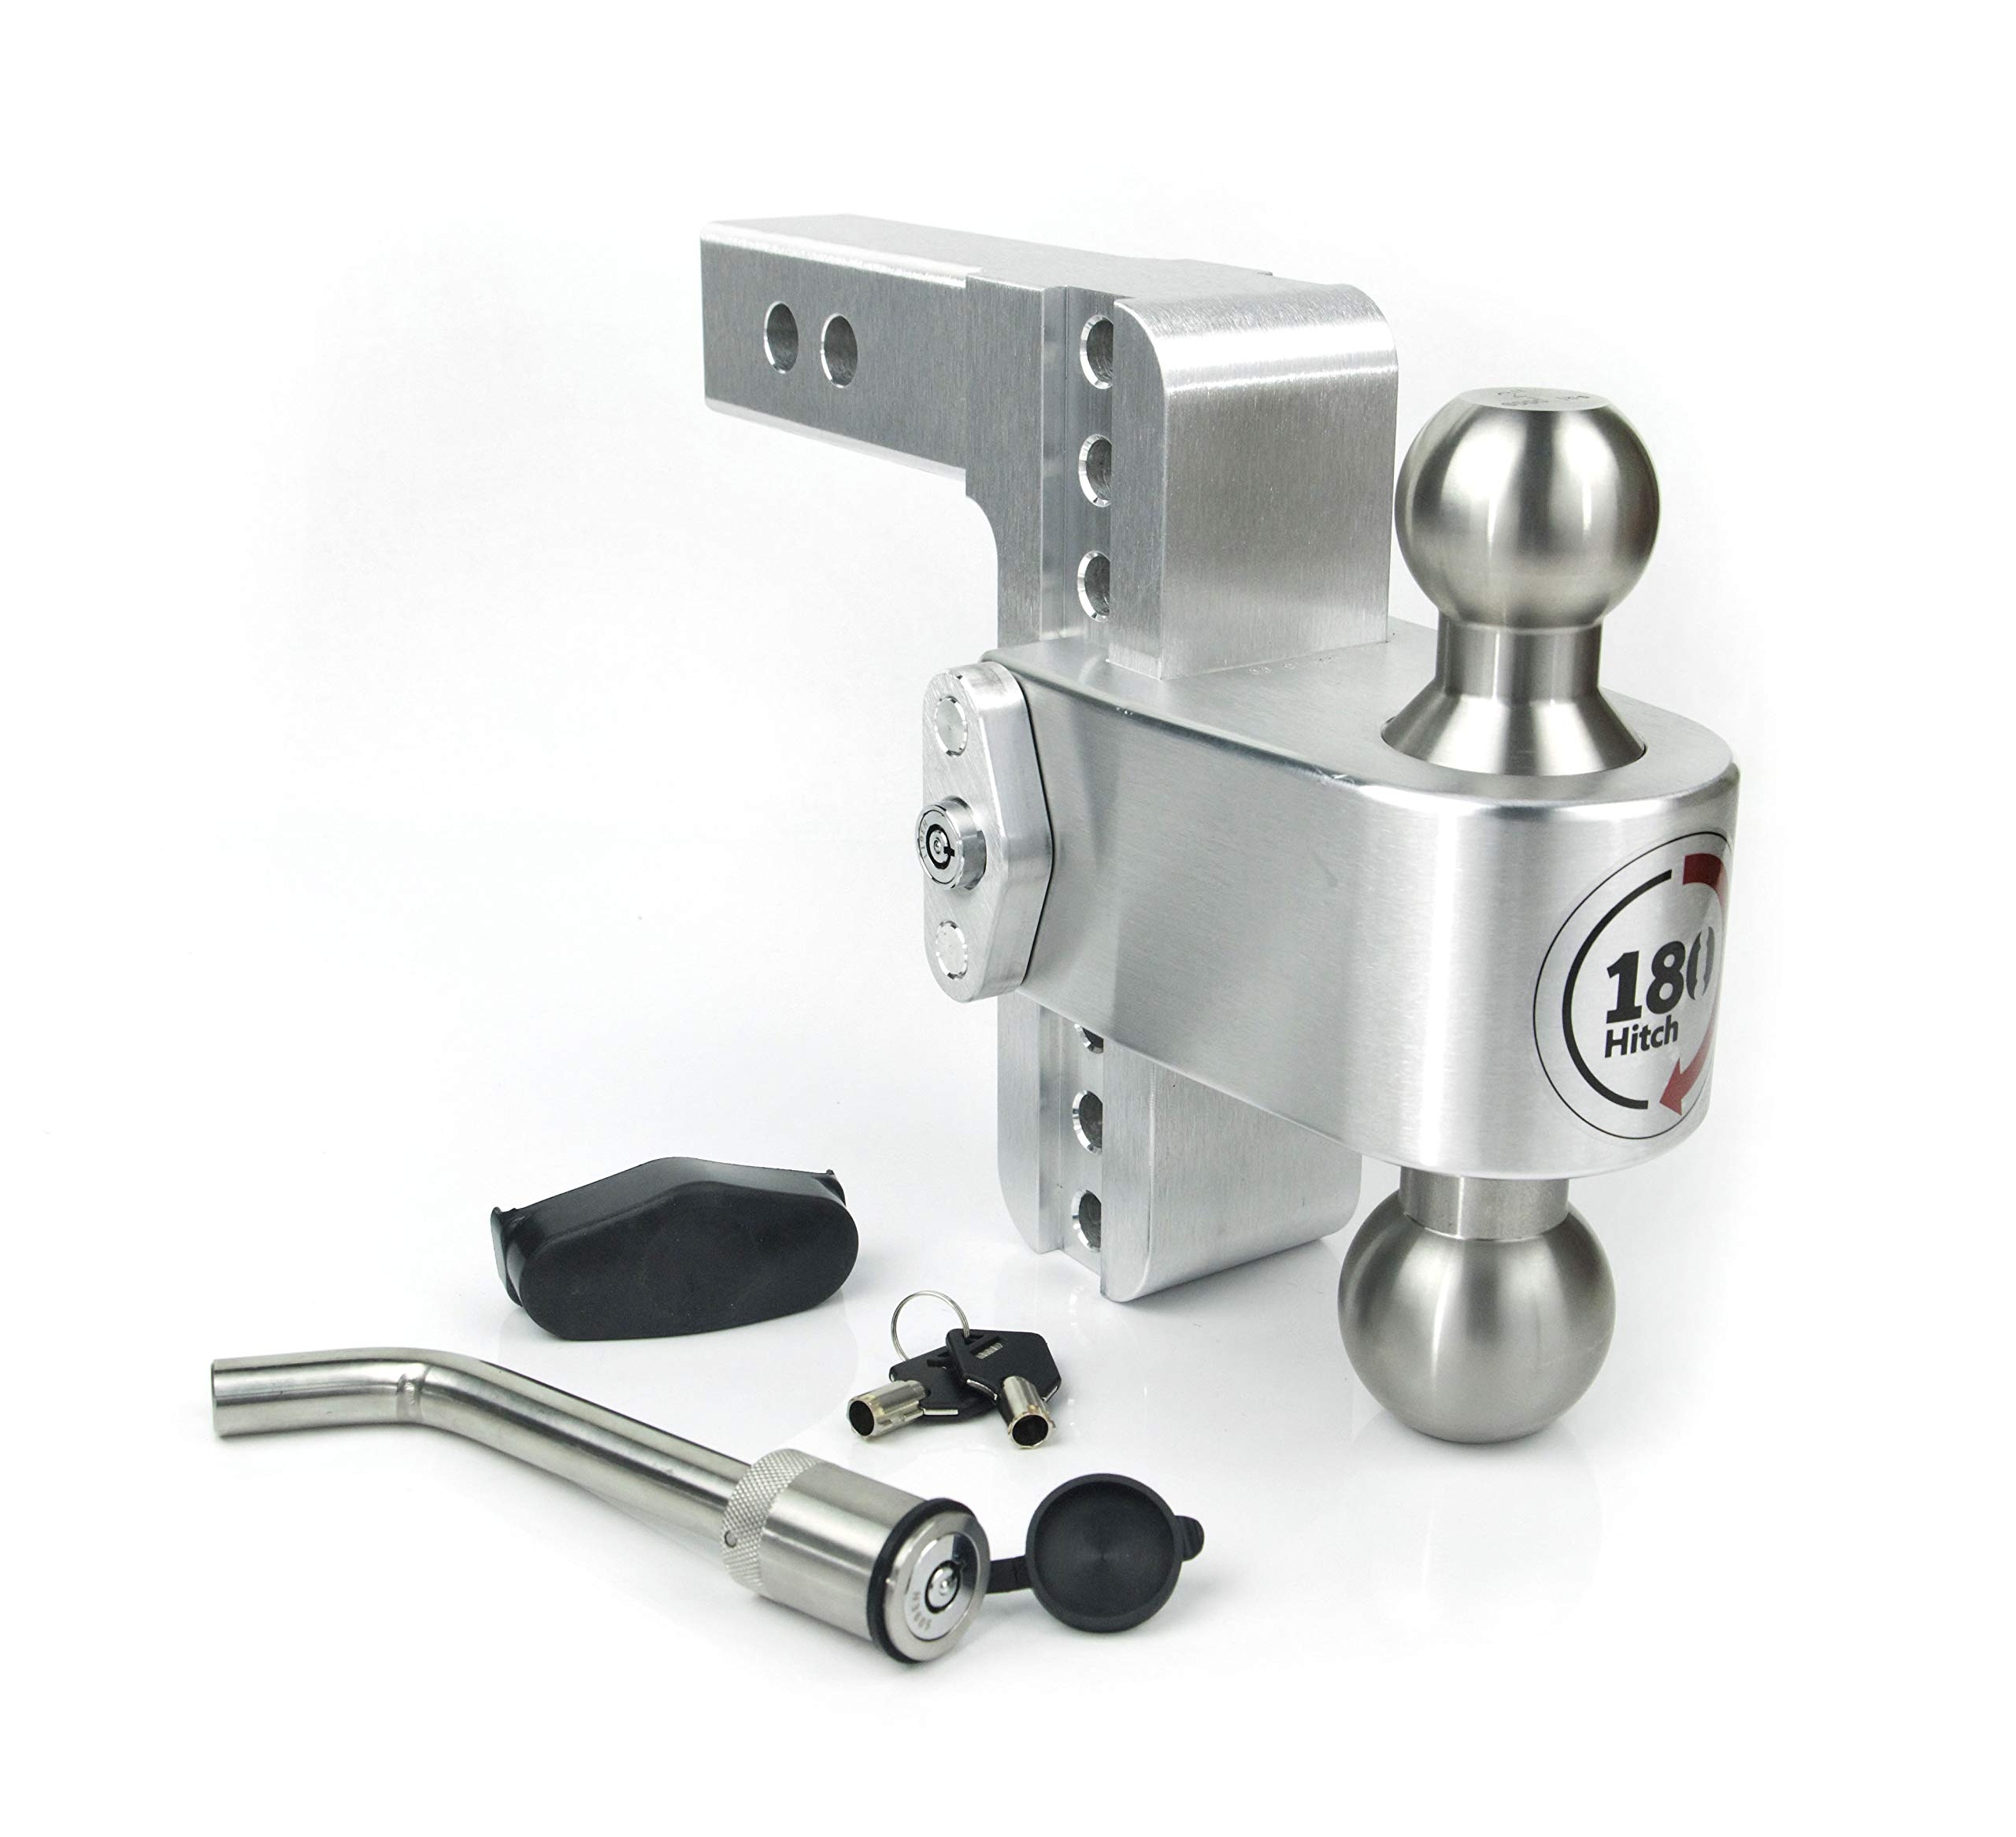 Weigh Safe LTB6-2-KA, 6'' Drop 180 Hitch w/ 2'' Shank/Shaft, Adjustable Aluminum Trailer Hitch & Ball Mount, Stainless Steel Combo Ball (2'' & 2-5/16''), Keyed Alike Key Lock and Hitch Pin by Weigh Safe